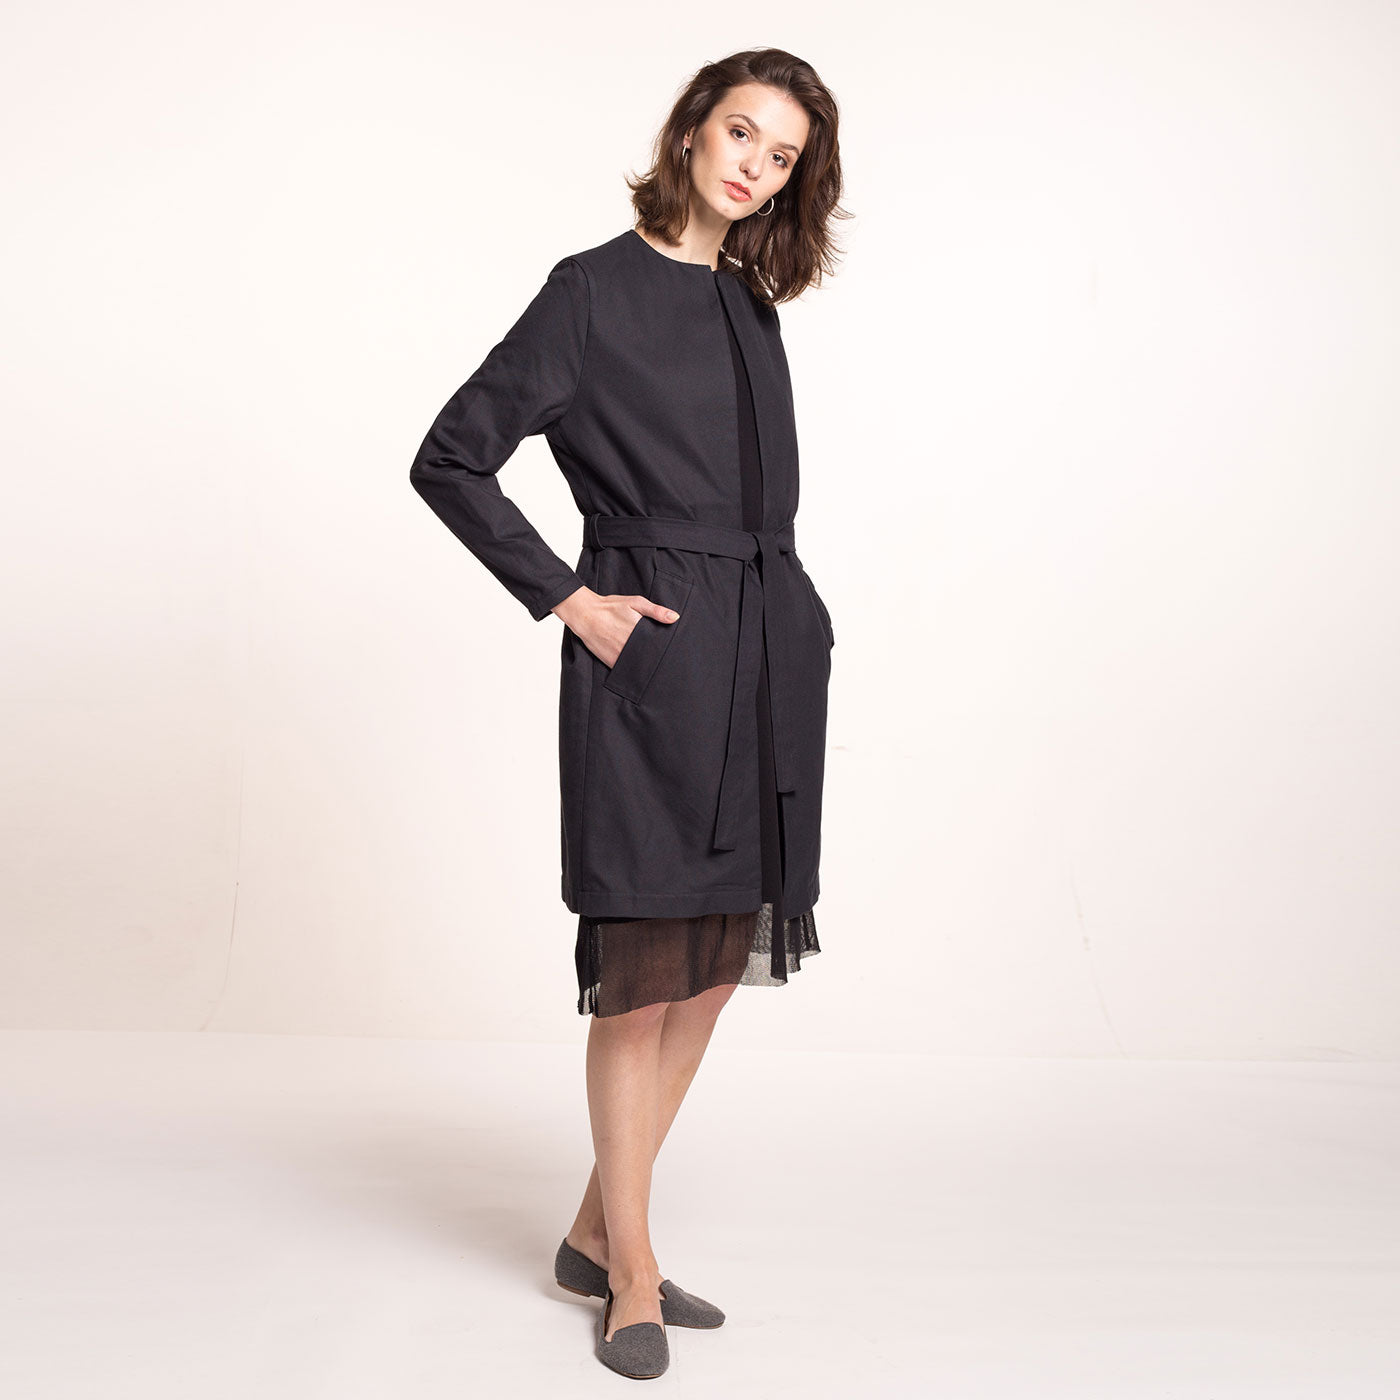 The model wears a black, sustainable cotton coat, with round neckline, straight fit and a belt, side view.